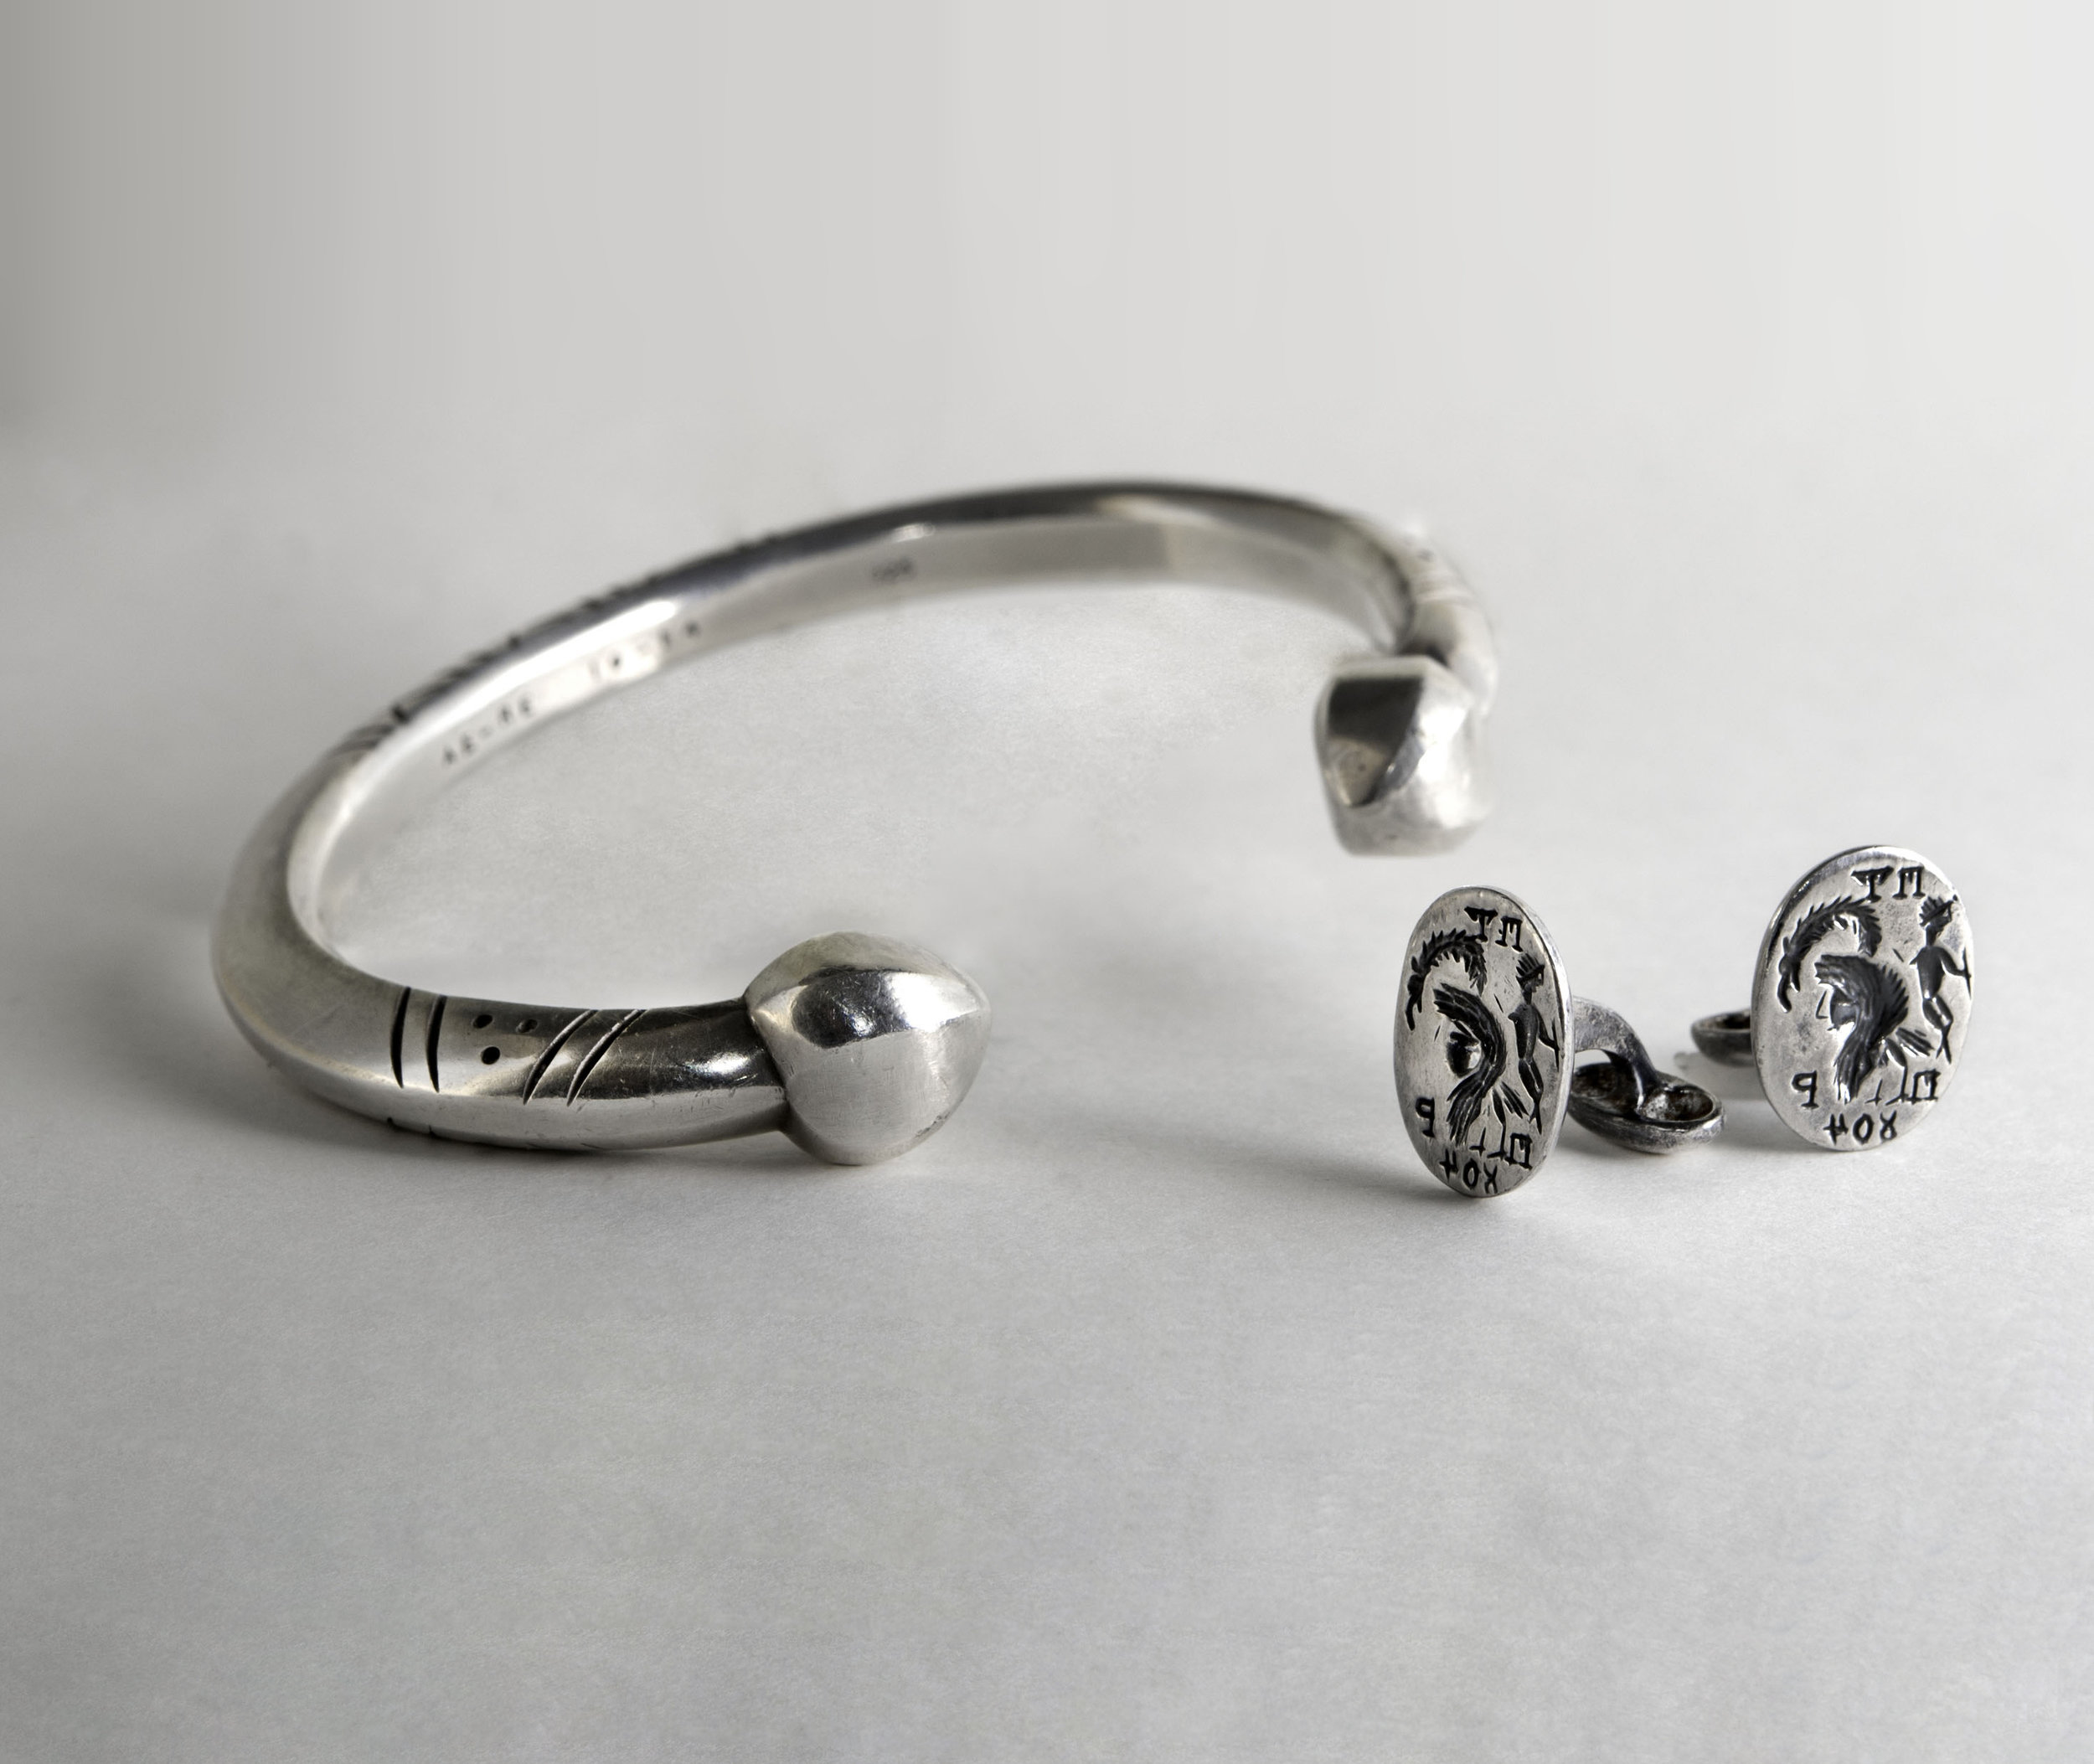 Sterling Silver Mens Bracelet with Silver Intaglio Cufflinks